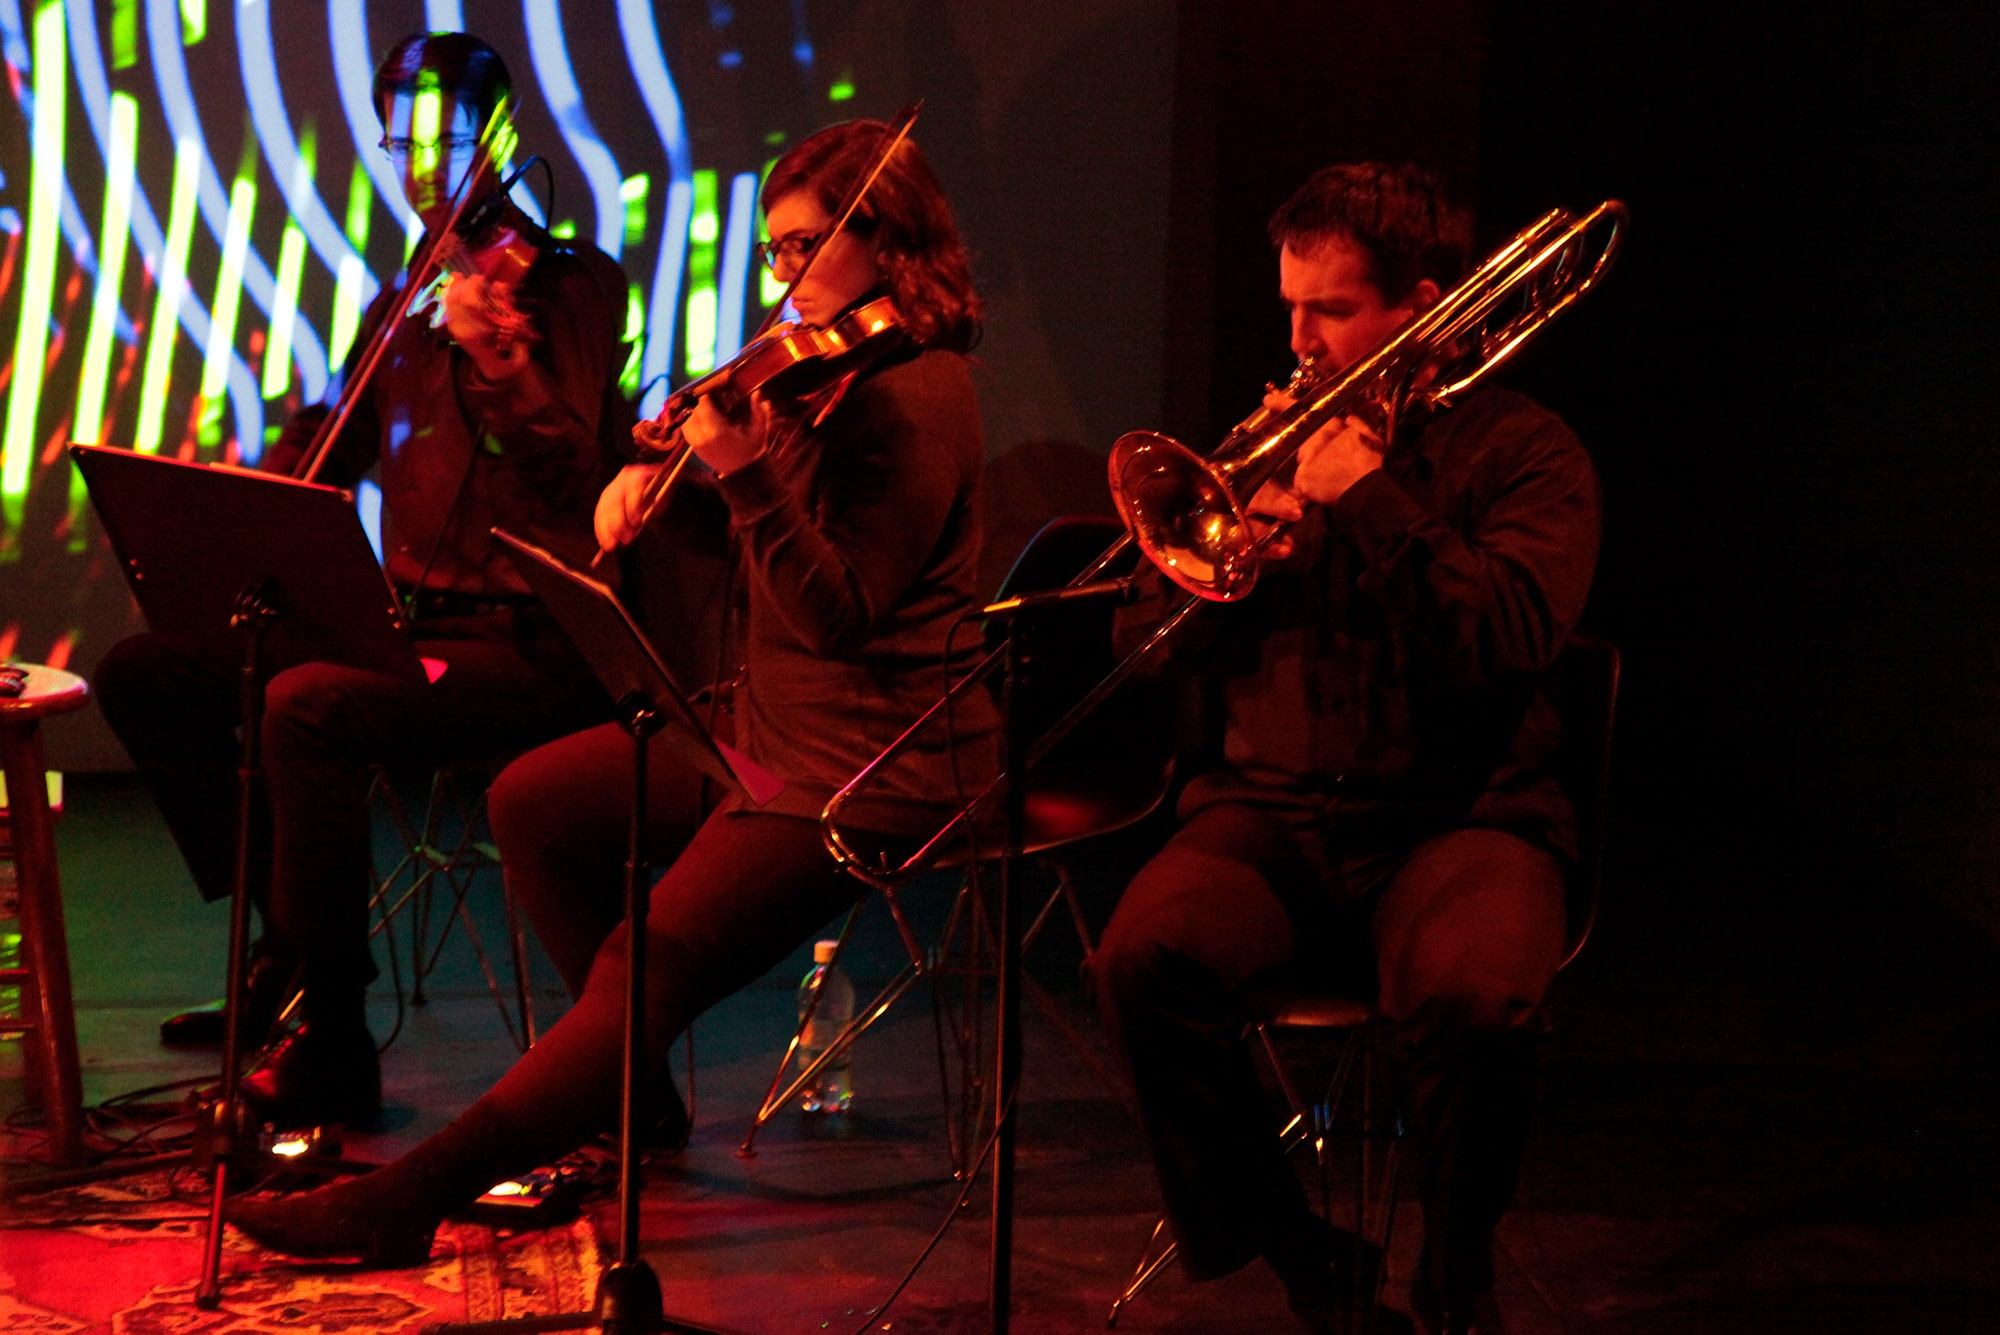 The Ensemble performing Randy Gibson's <em>Apparitions of The Four Pillars with Their Lowest Additive Primes as limited to the 3rd, 7th, 9th, and 11th New Primes chosen Cyclically, The Toll of Premonition, The Memorial Connector over the Outlying Primal Abyss, and The Mid-Winter Ending</em> at the 2011 Avant Music Festival